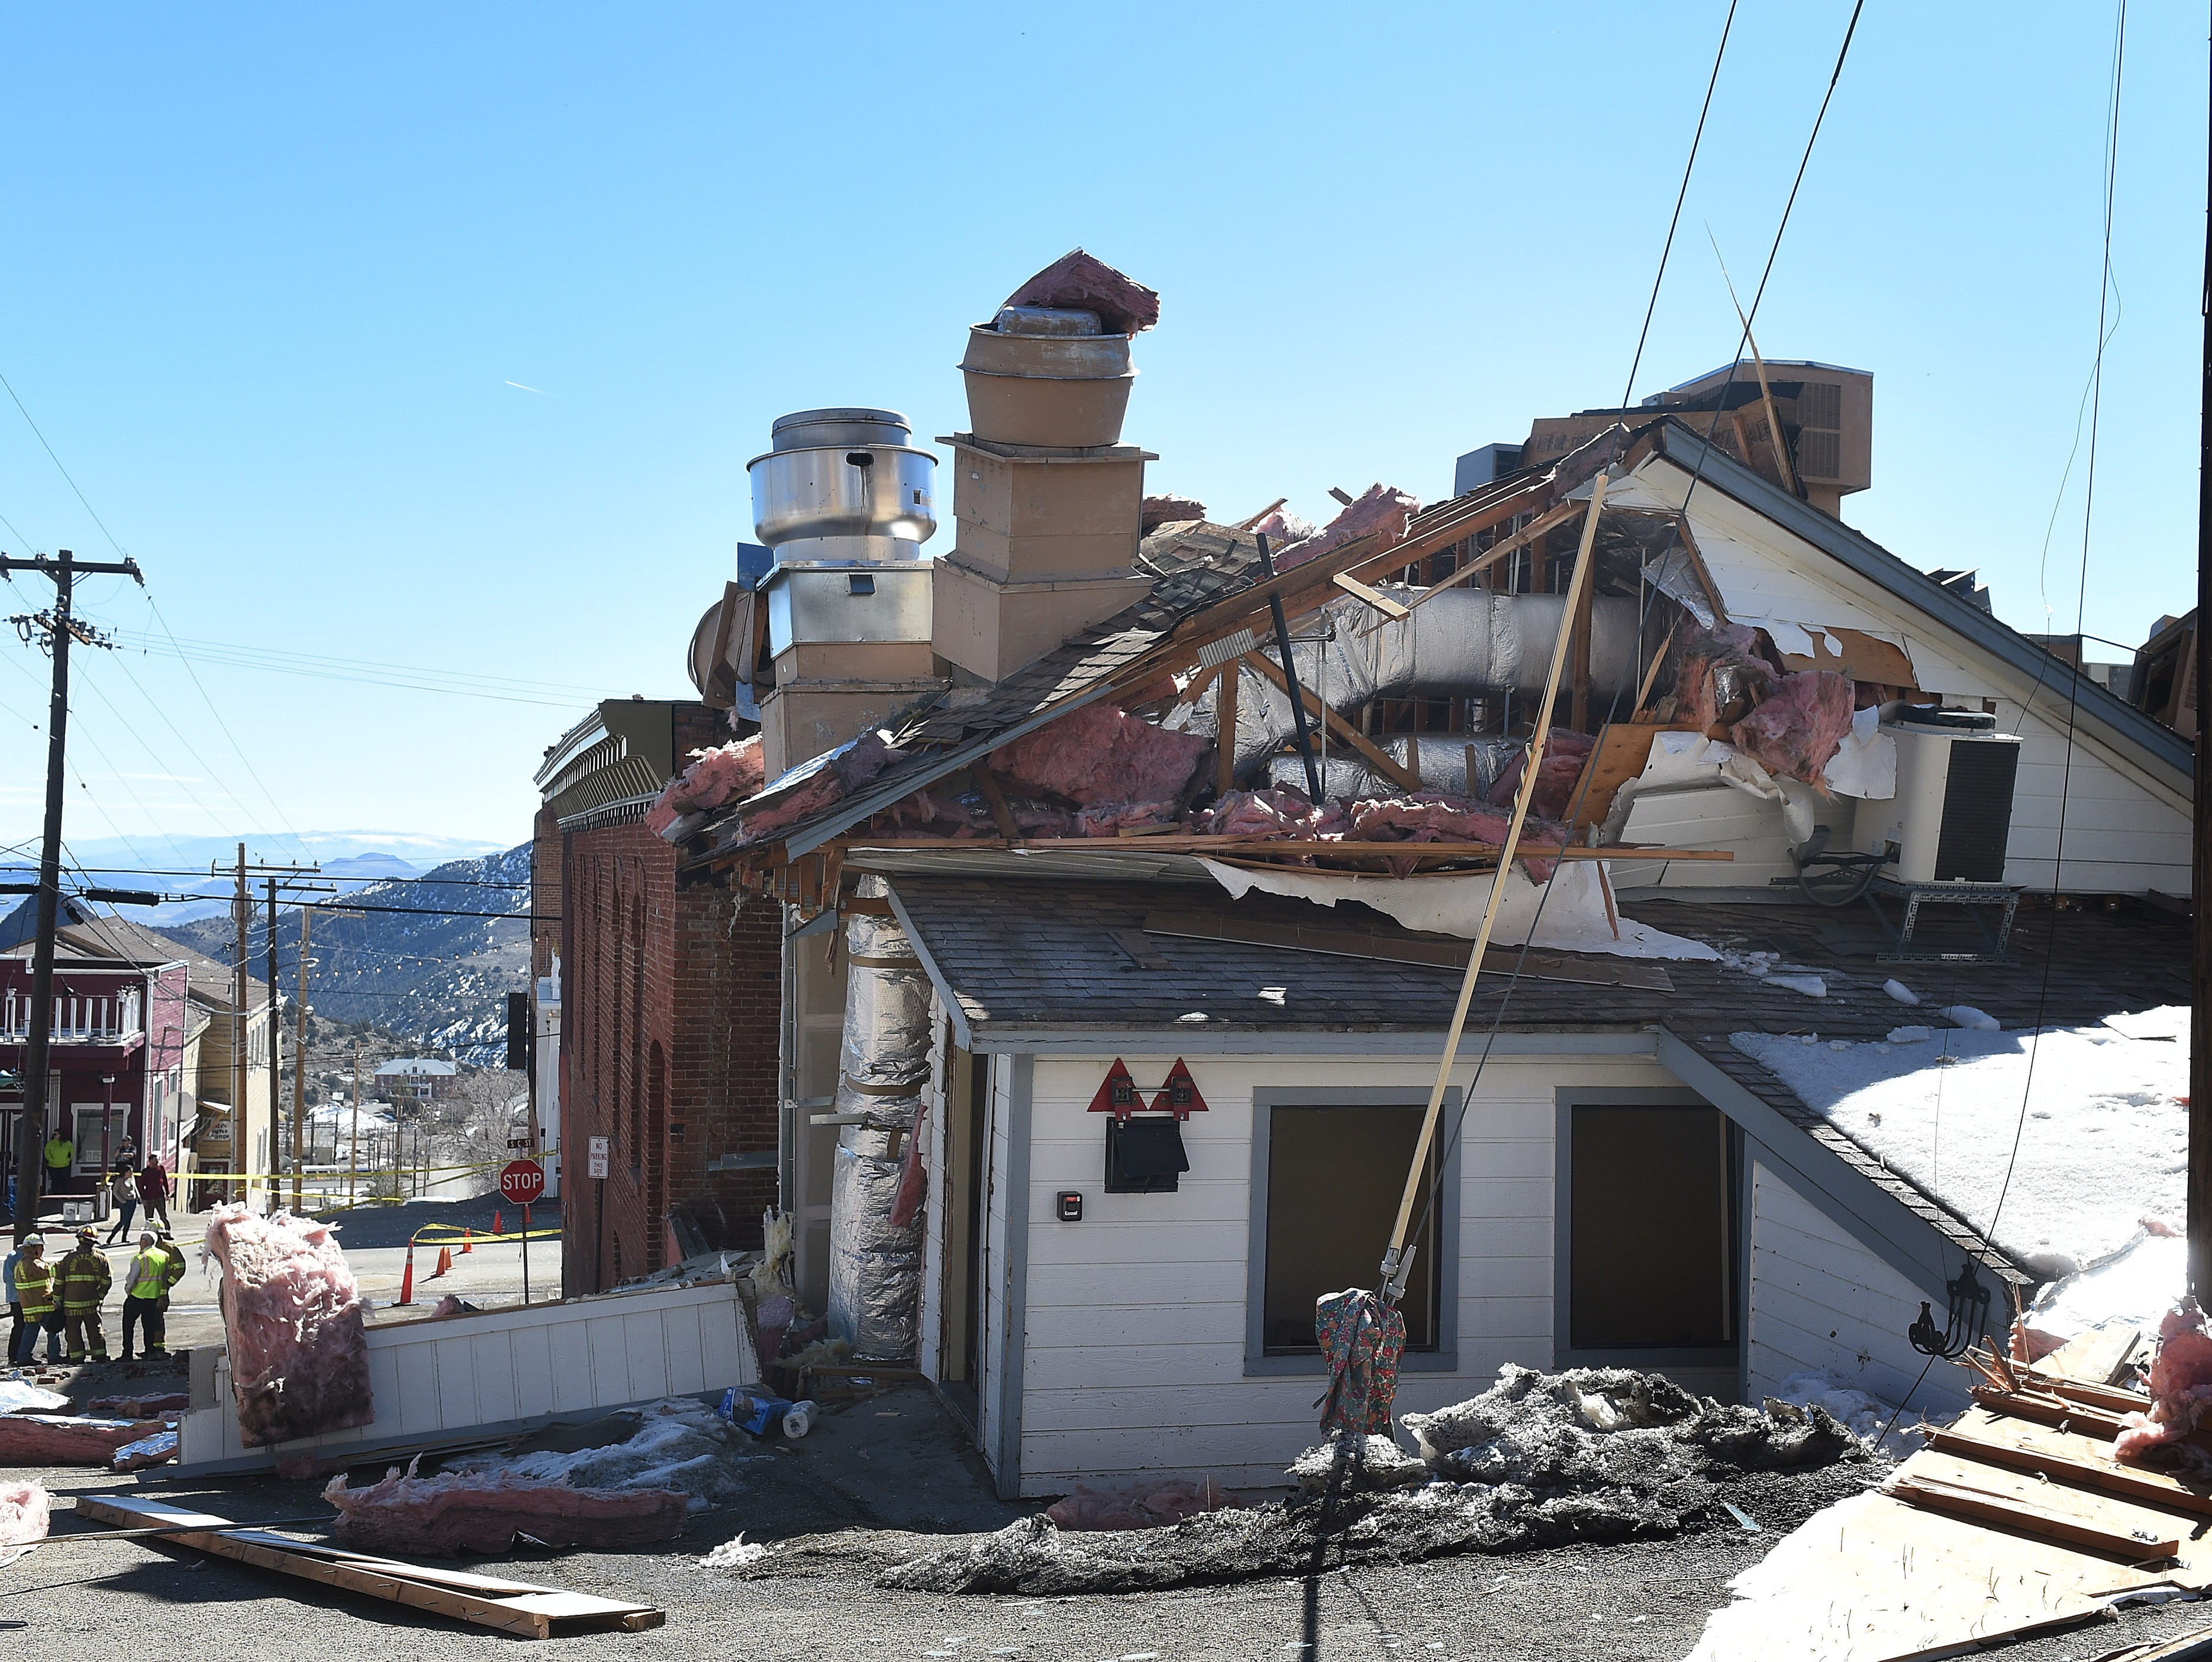 The damage is seen from an explosion at the historic Delta Saloon in Virginia City on March 12, 2019. One employee was in the building at the time of the explosion was not hurt.